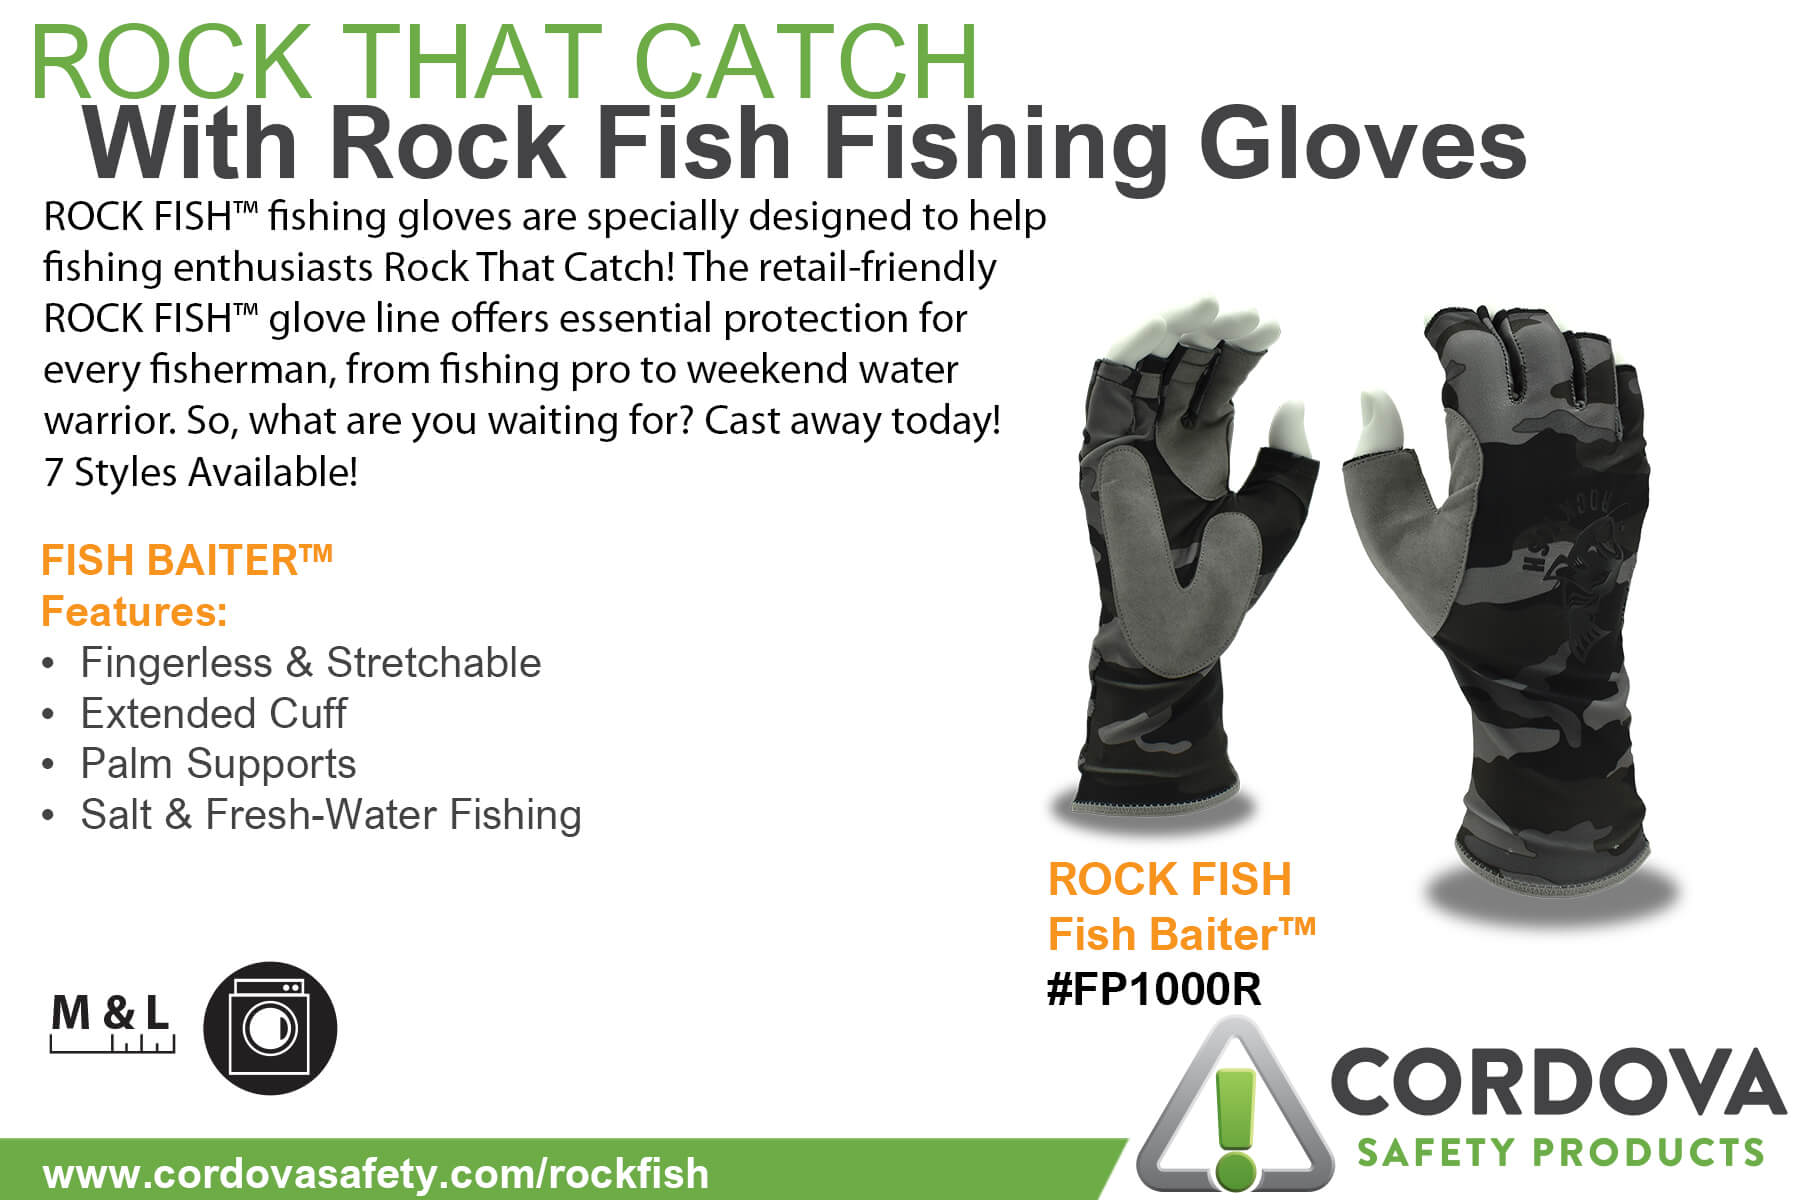 FP1000R Fishing Gloves